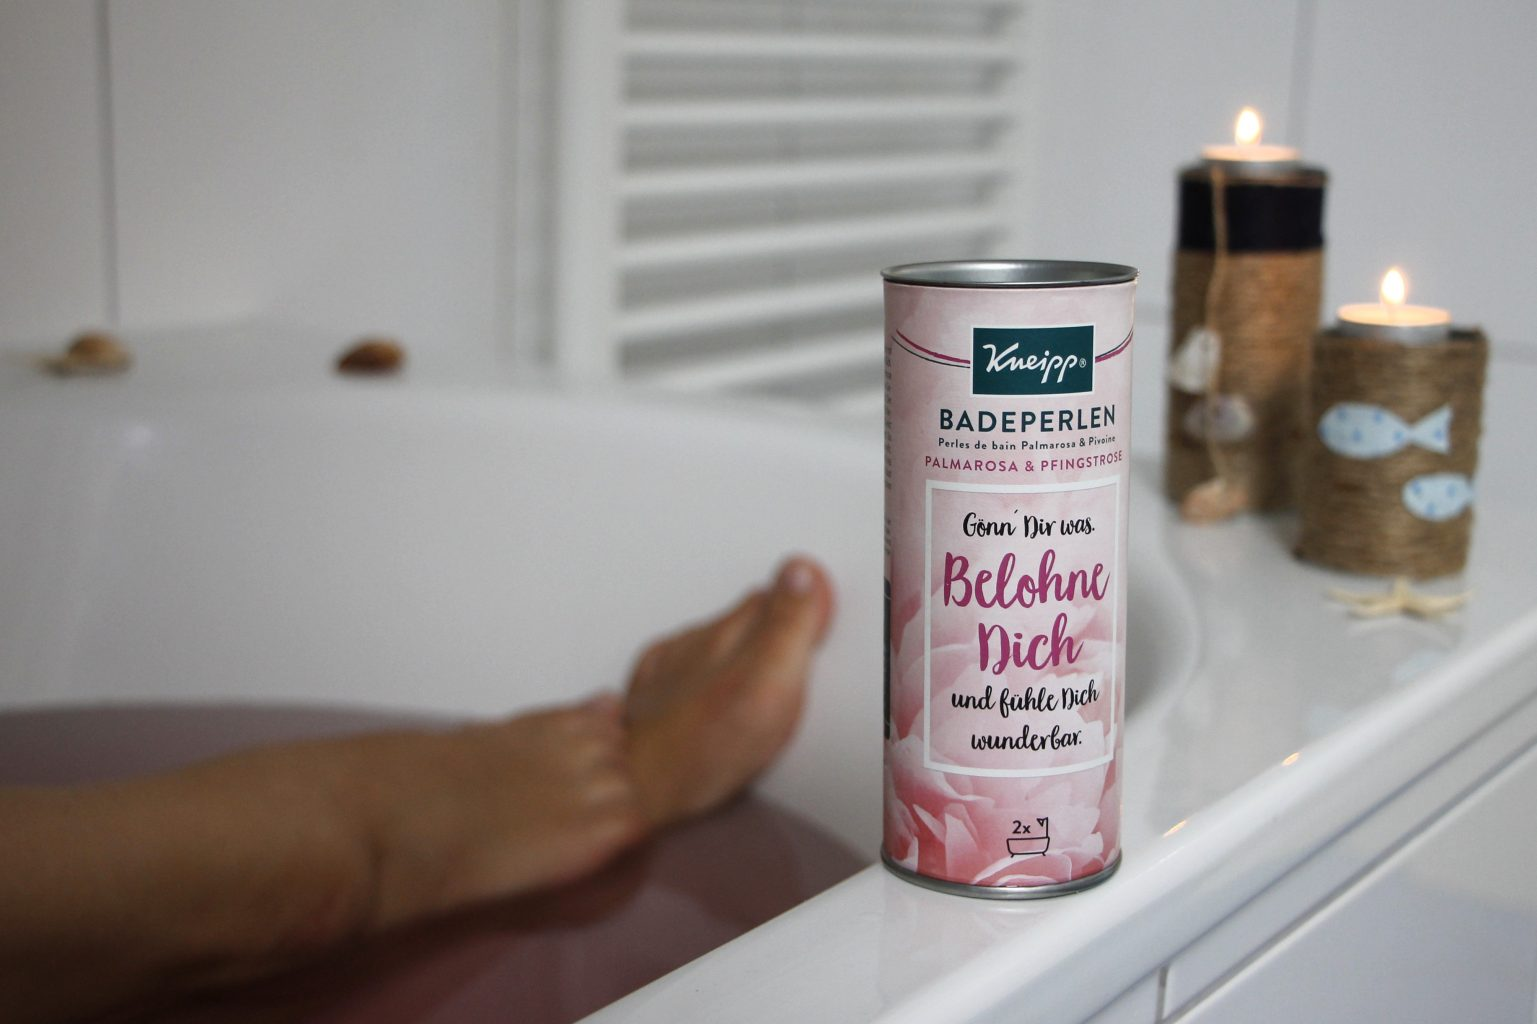 Teelichthalter Upcycling Kneipp